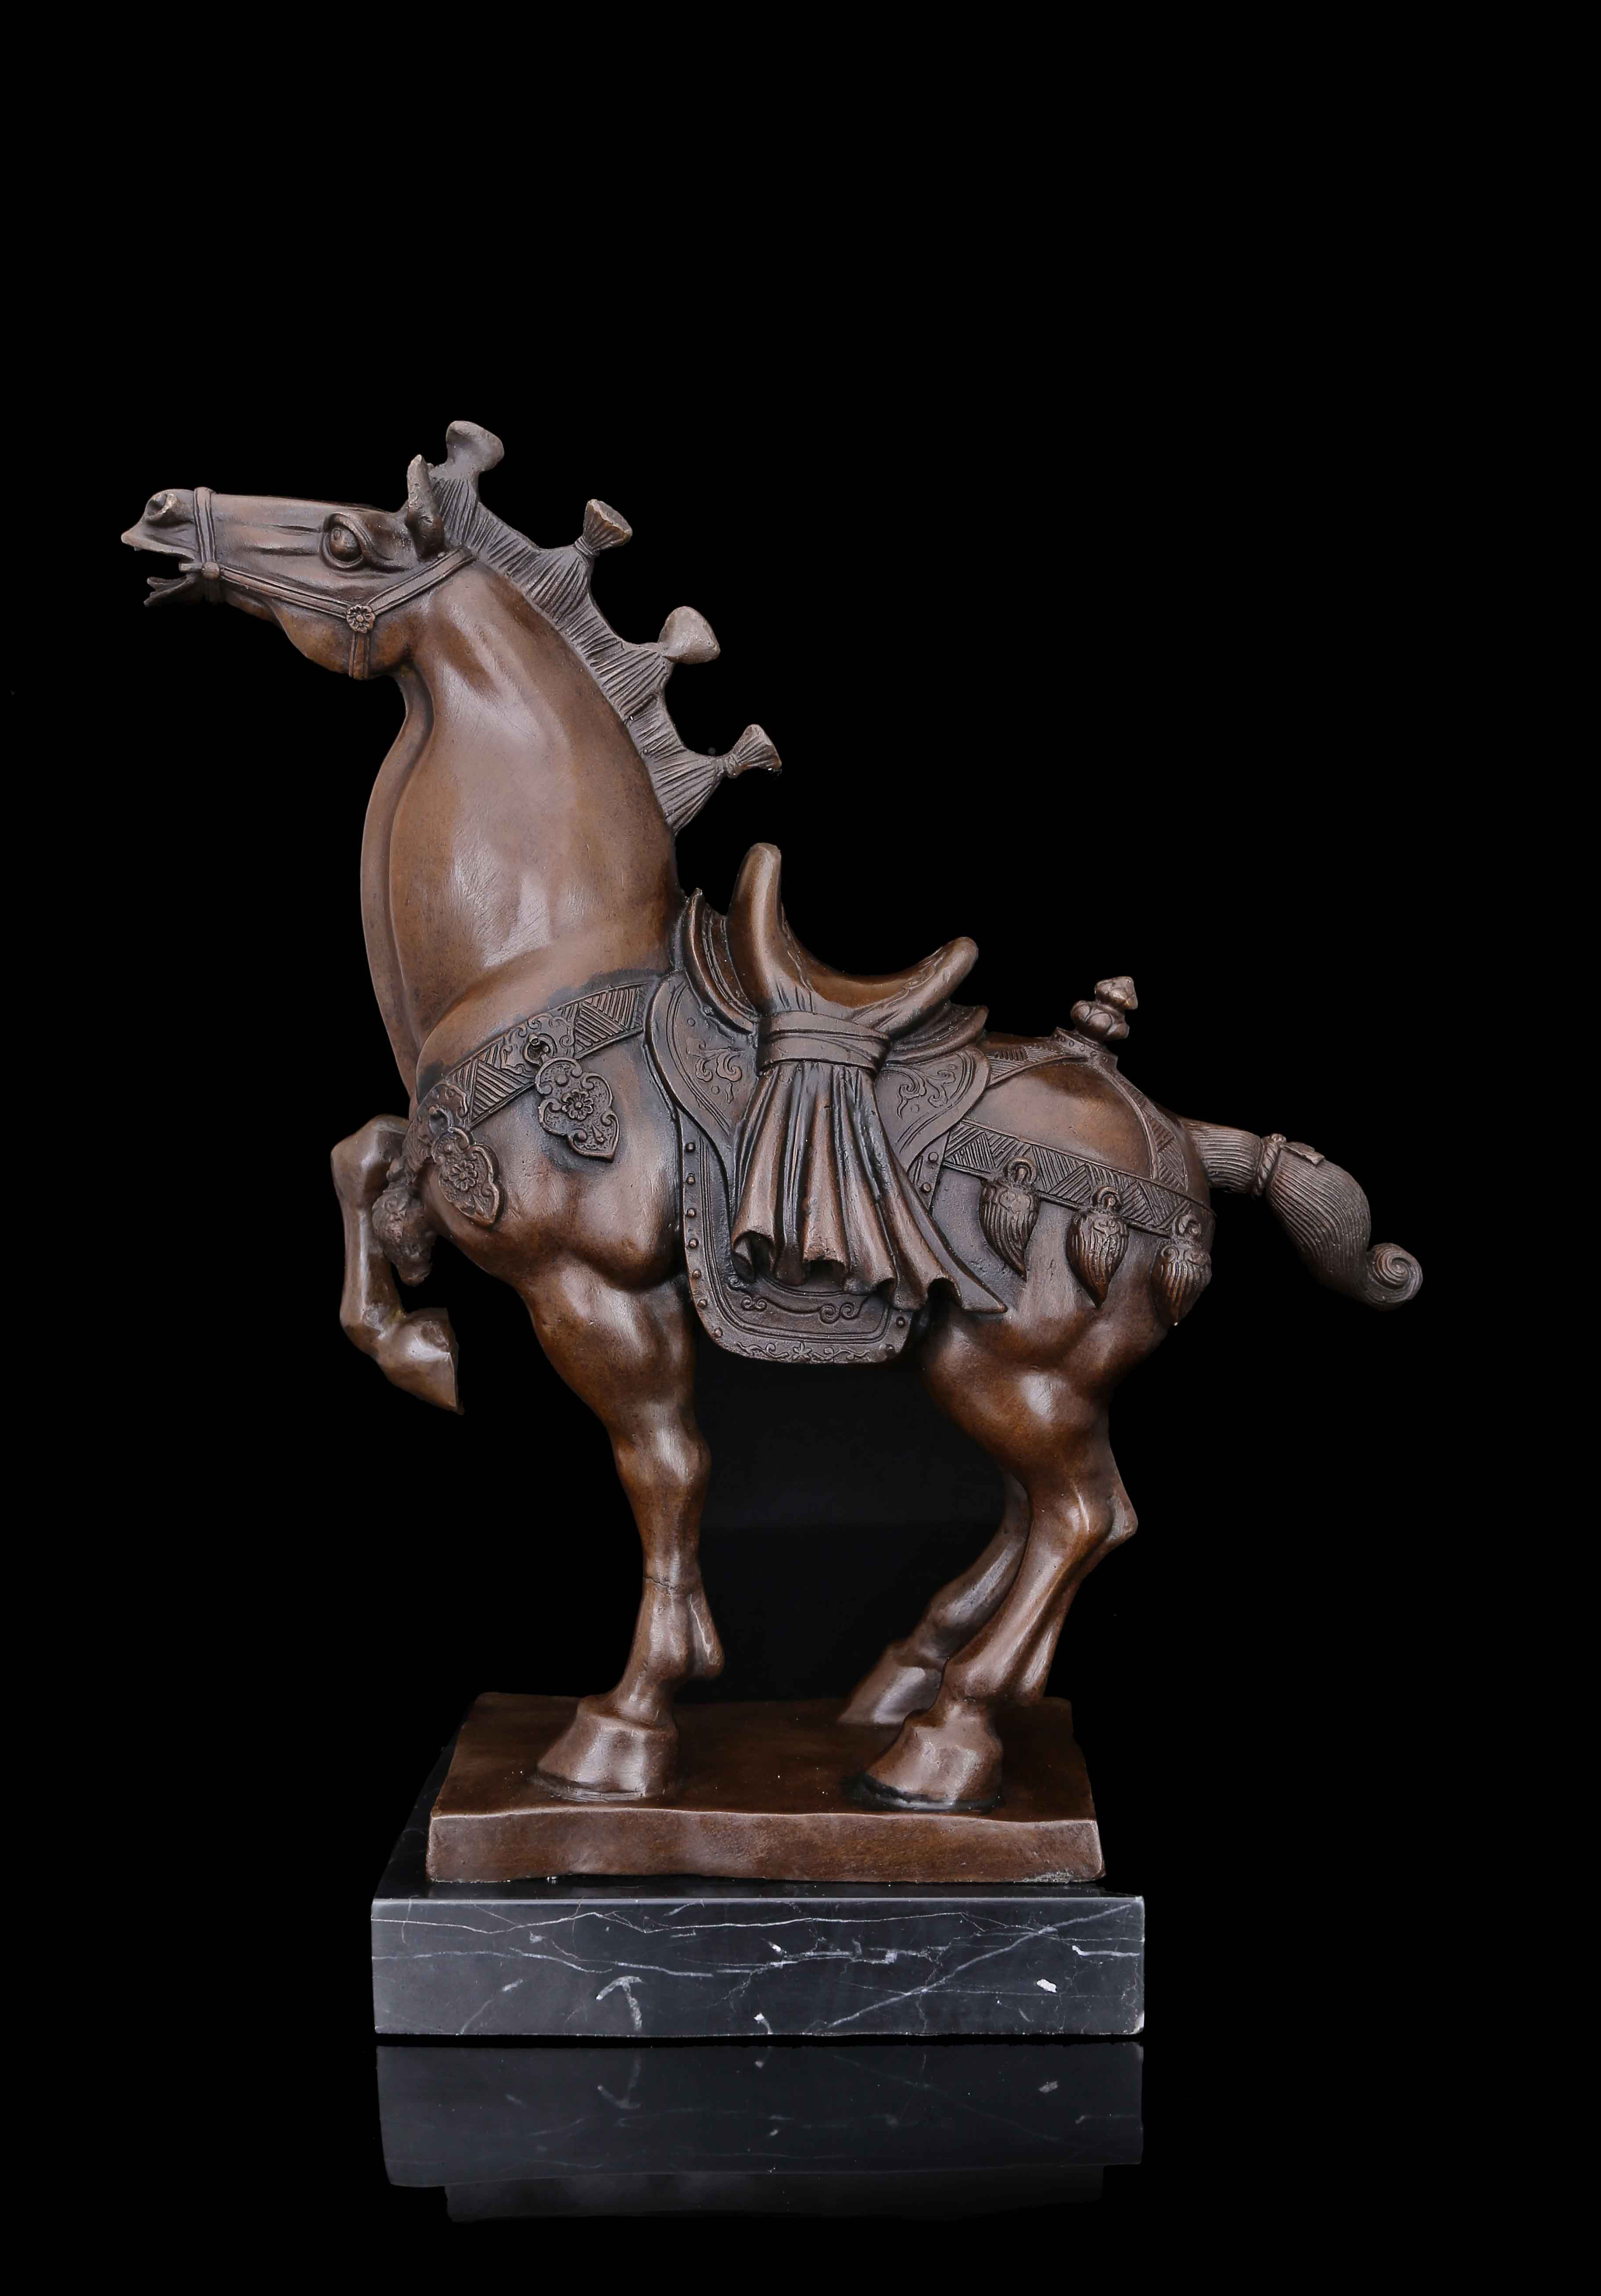 Wo have copper art rich Tang Ma ornaments gift horse bronze ornaments entrance animal sculpture